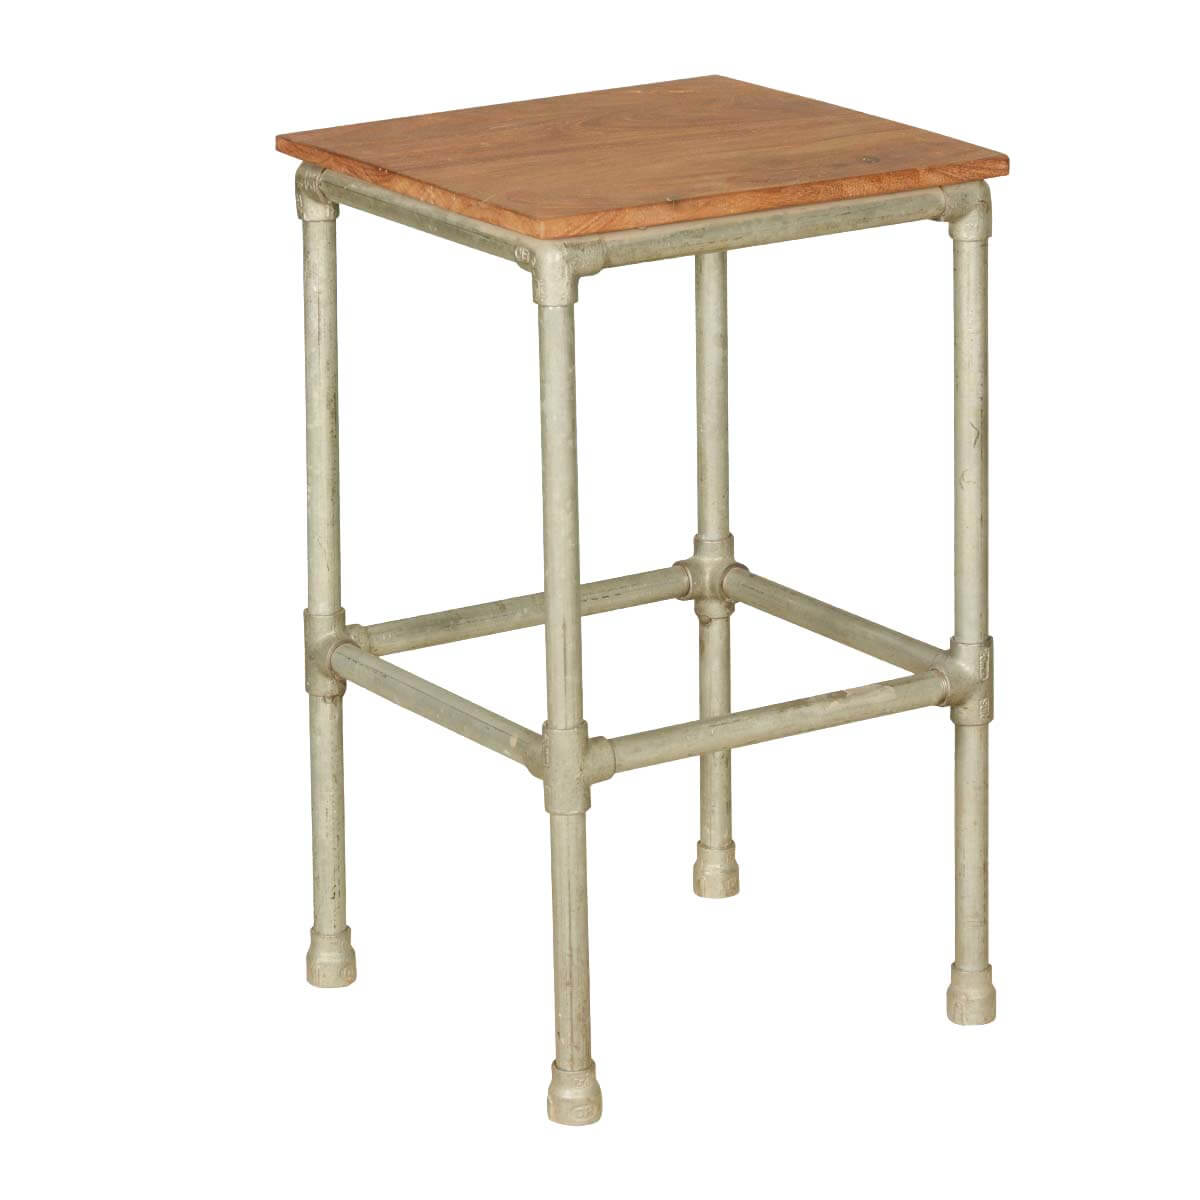 Simply Acacia Wood Industrial Square End Table